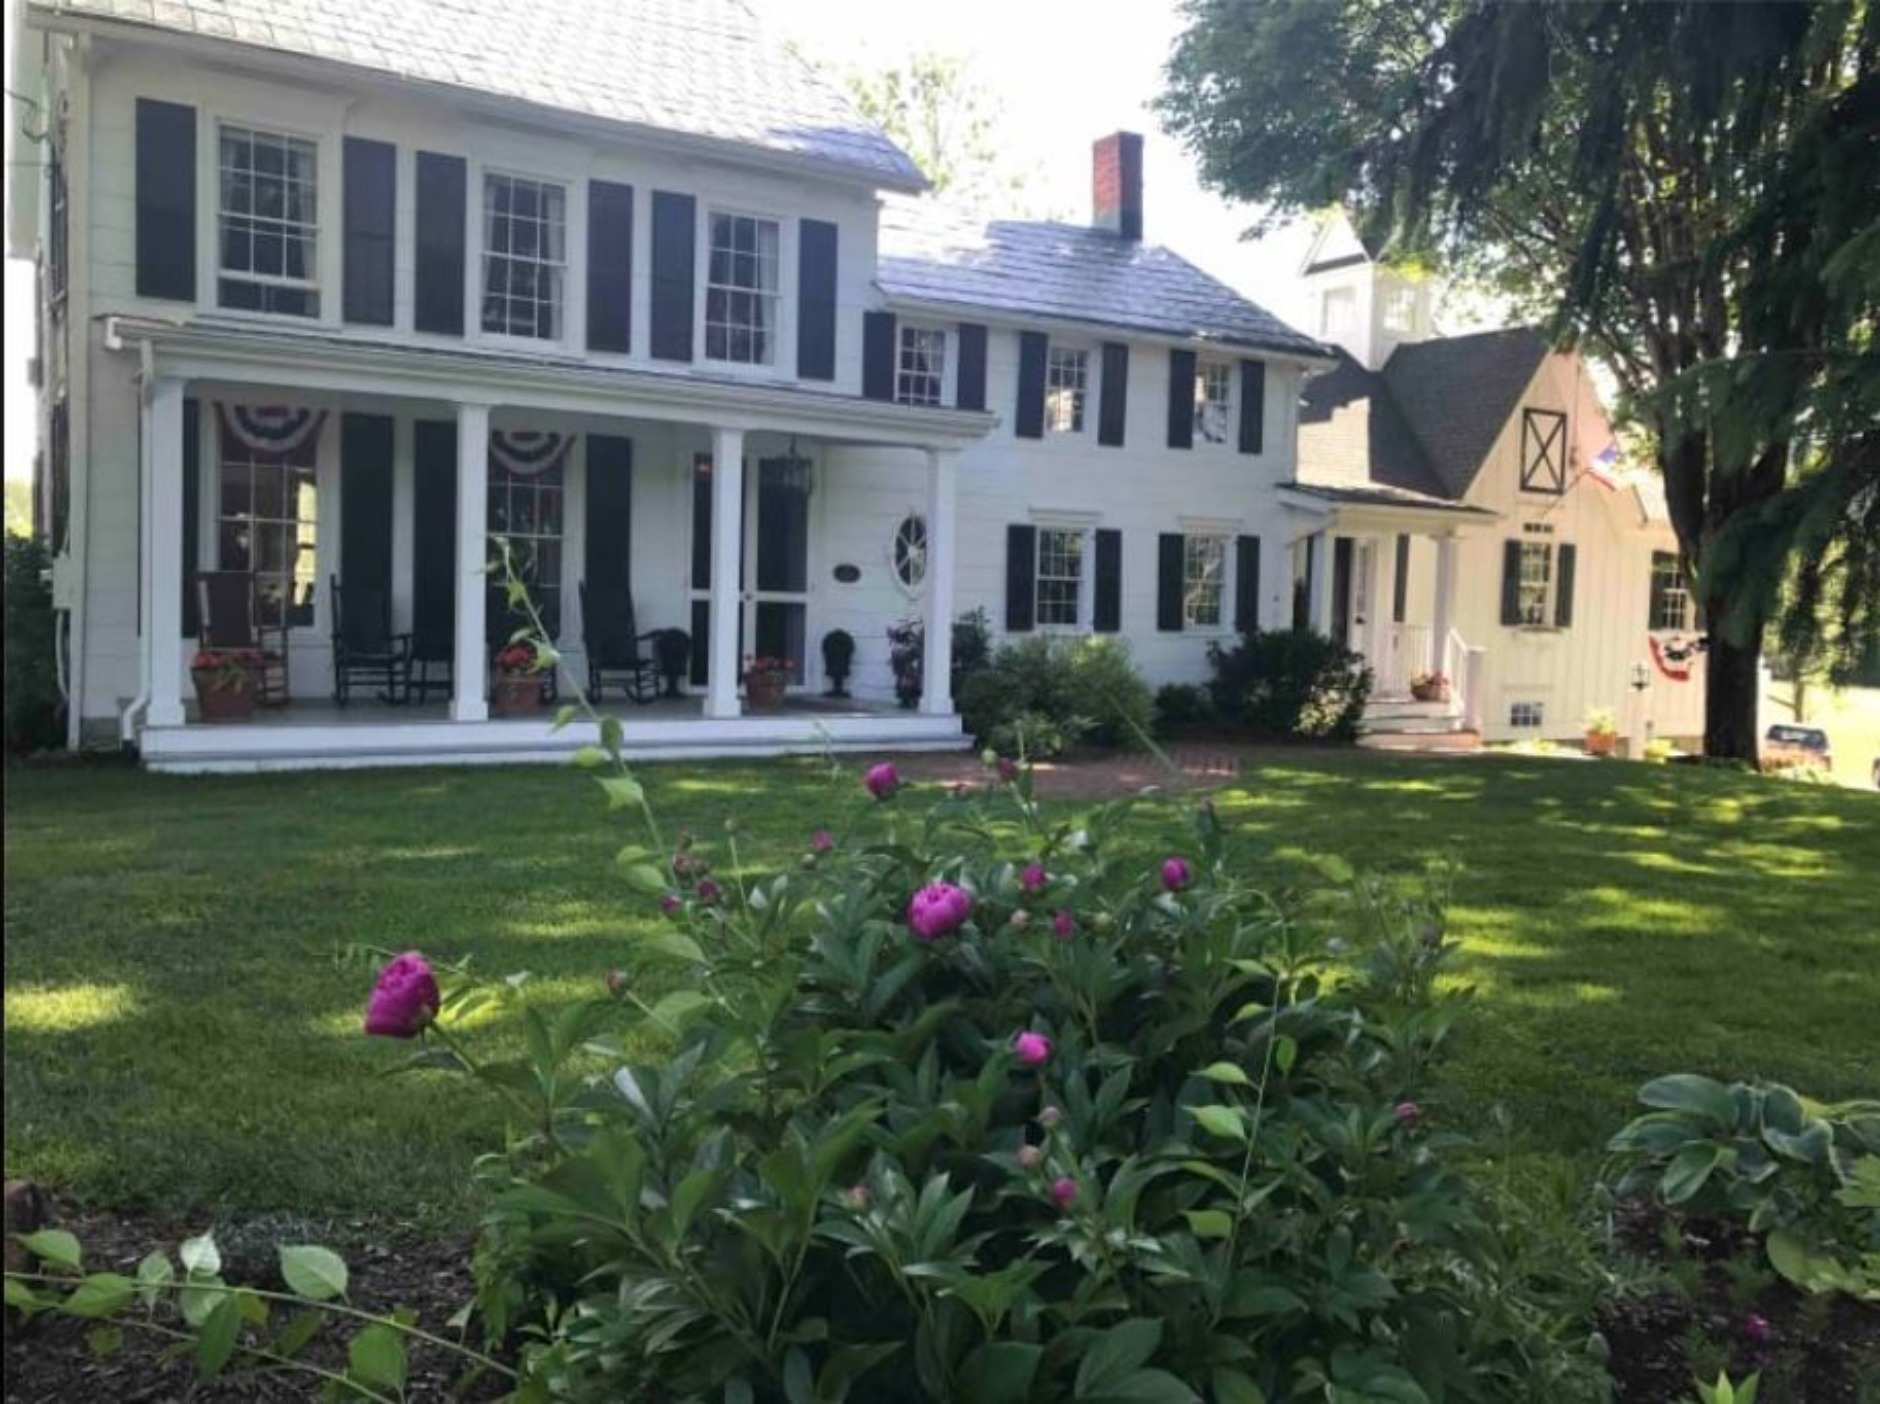 A large lawn in front of a house at Inn at Stony Creek.